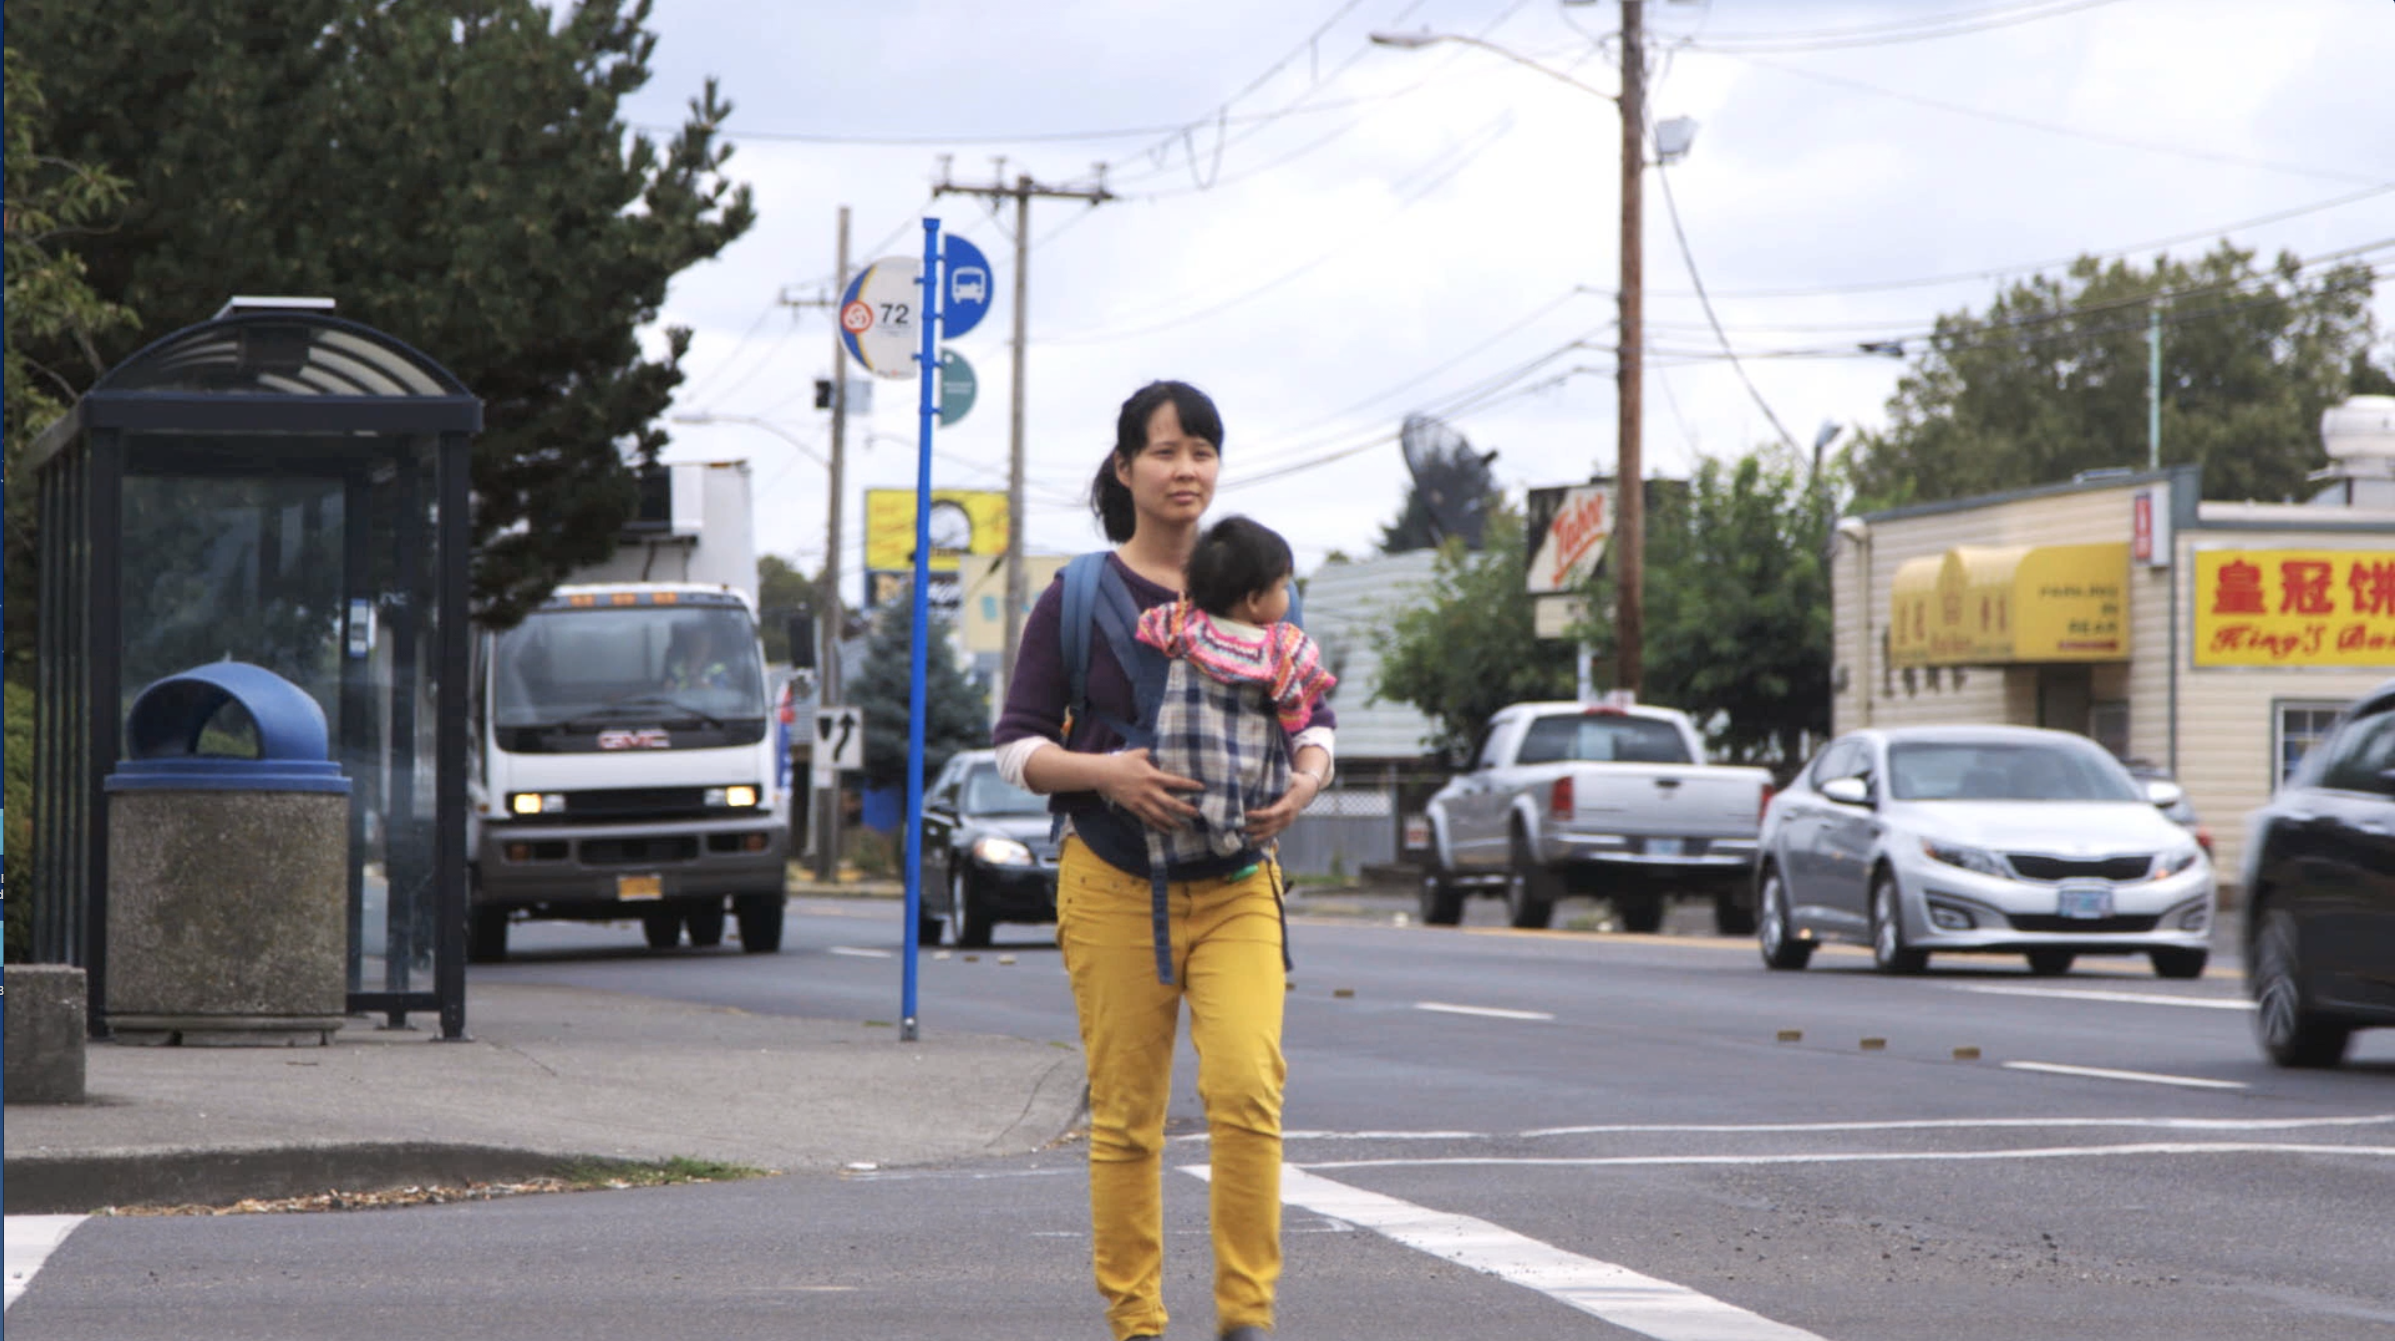 Khanh crosses street: Khanh Pham and her daughter at SE 82nd and Division, an intersection that scares her.